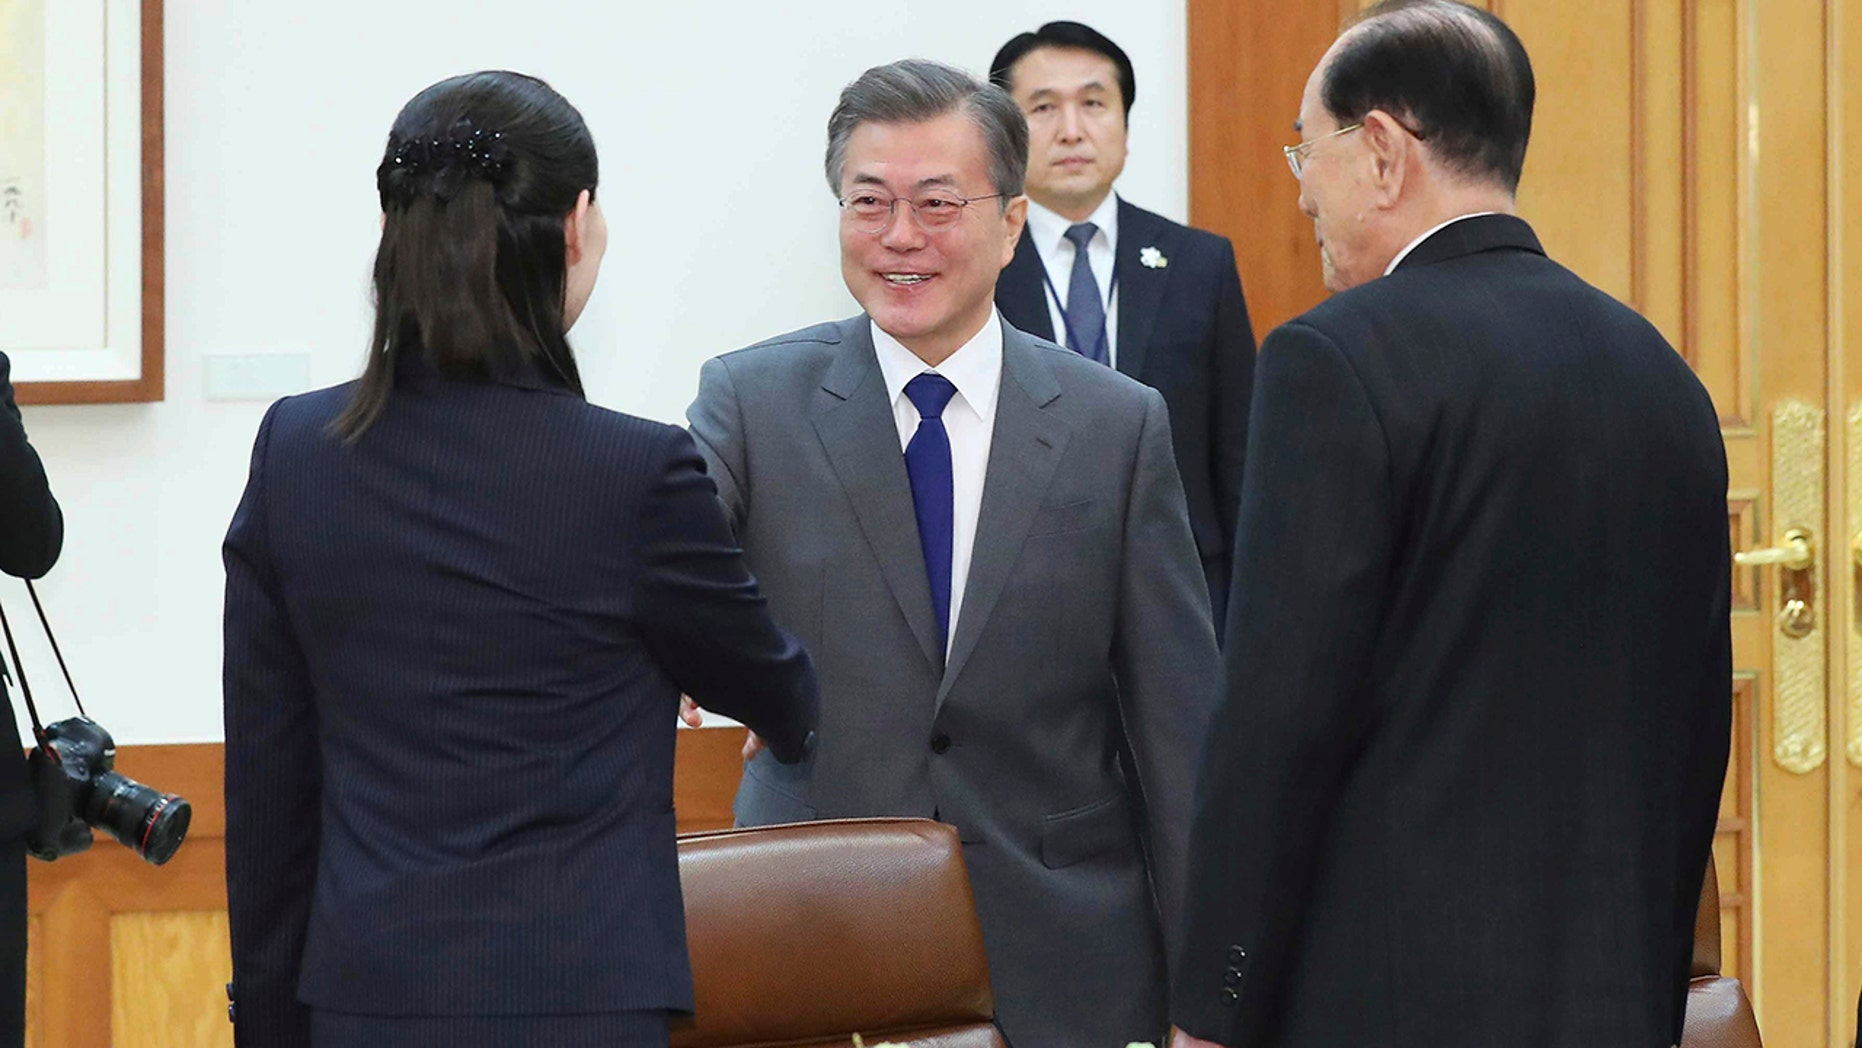 Jun 2018. It was little more than a year ago that South Korean police descended on the.